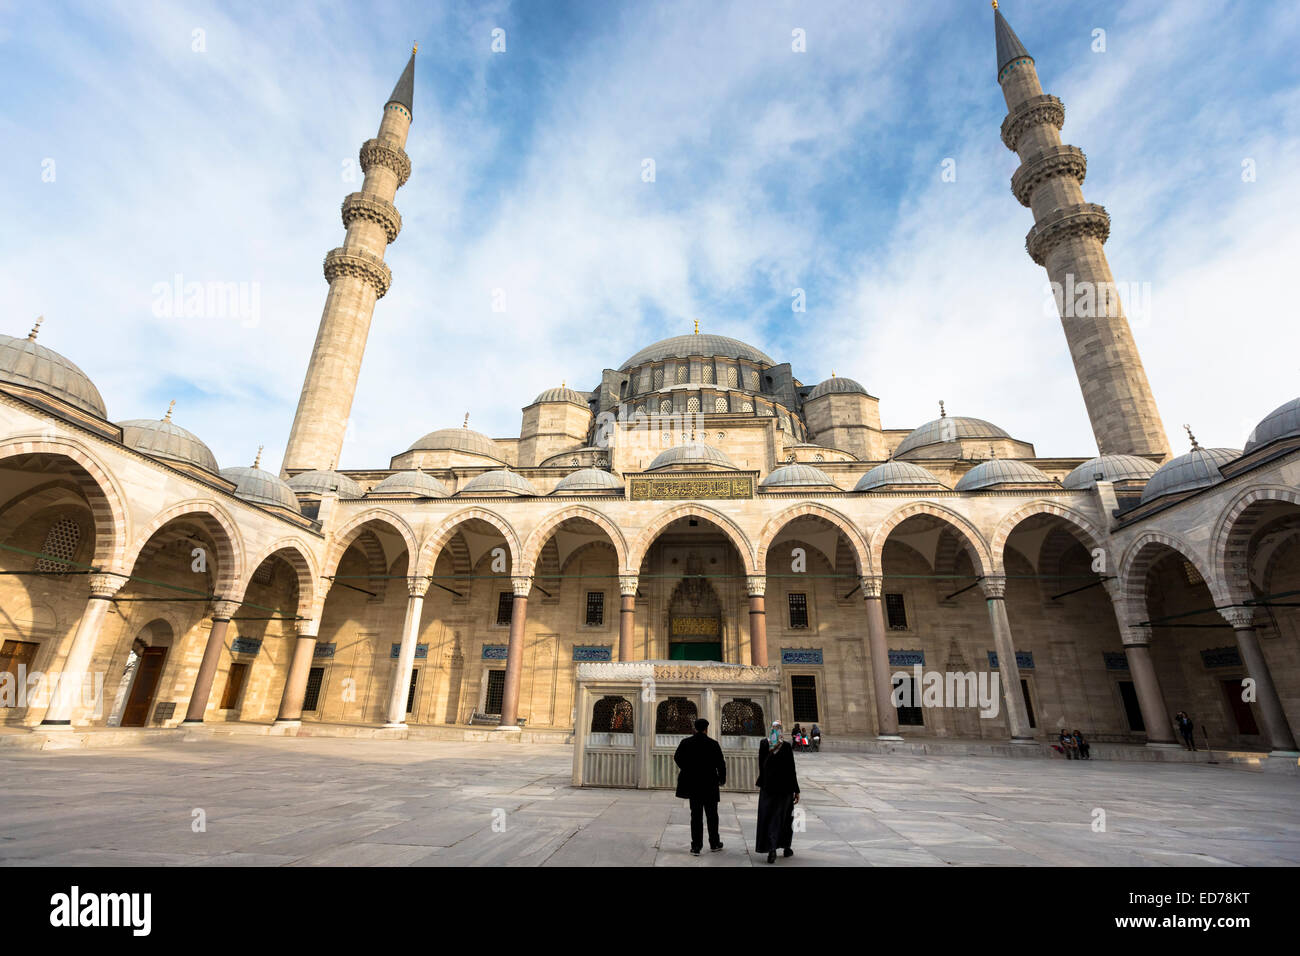 Muslims in courtyard of Suleymaniye Mosque in Istanbul, Republic of Turkey - Stock Image